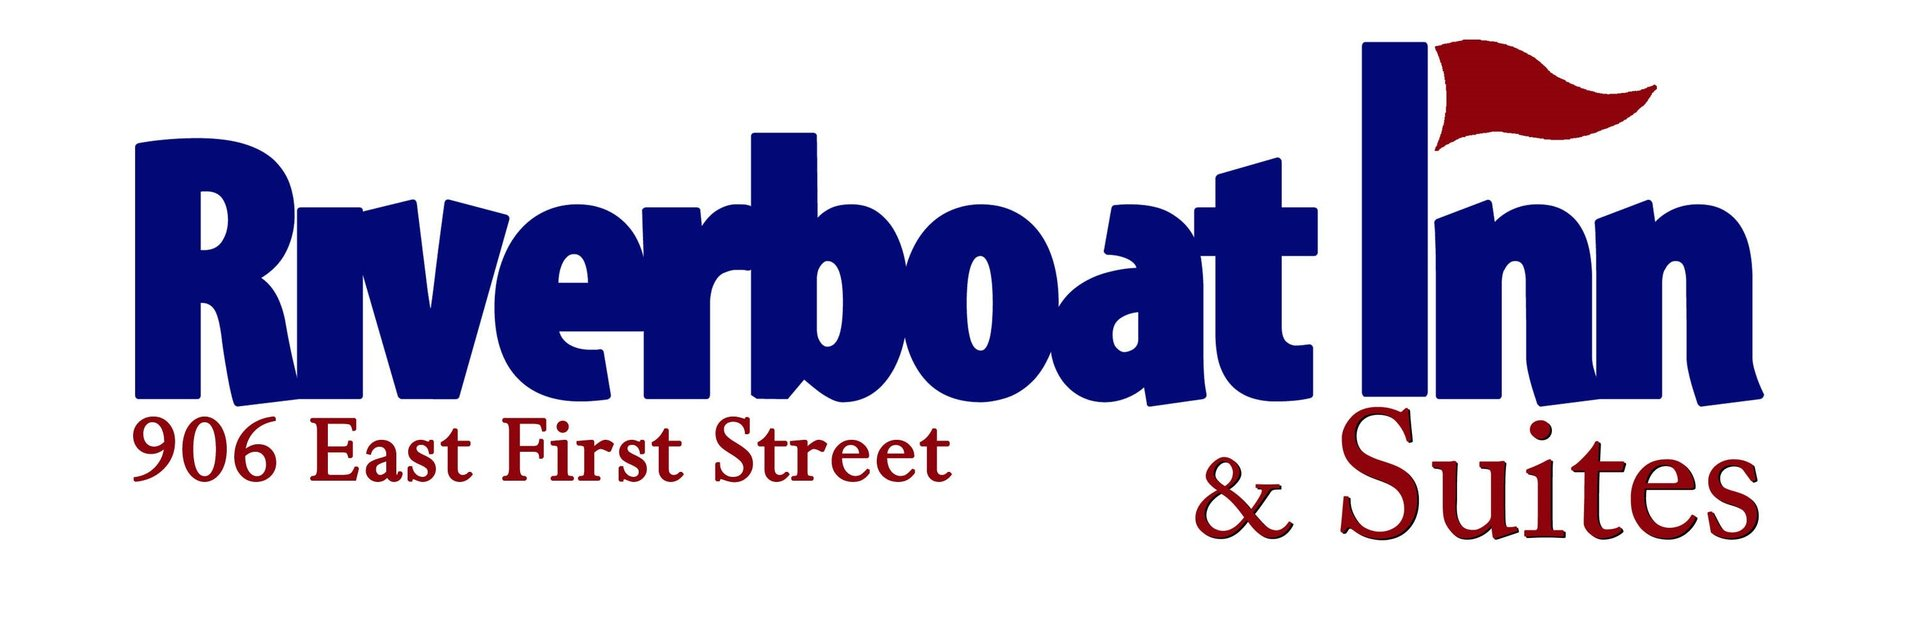 Riverboat Inn & Suites logo